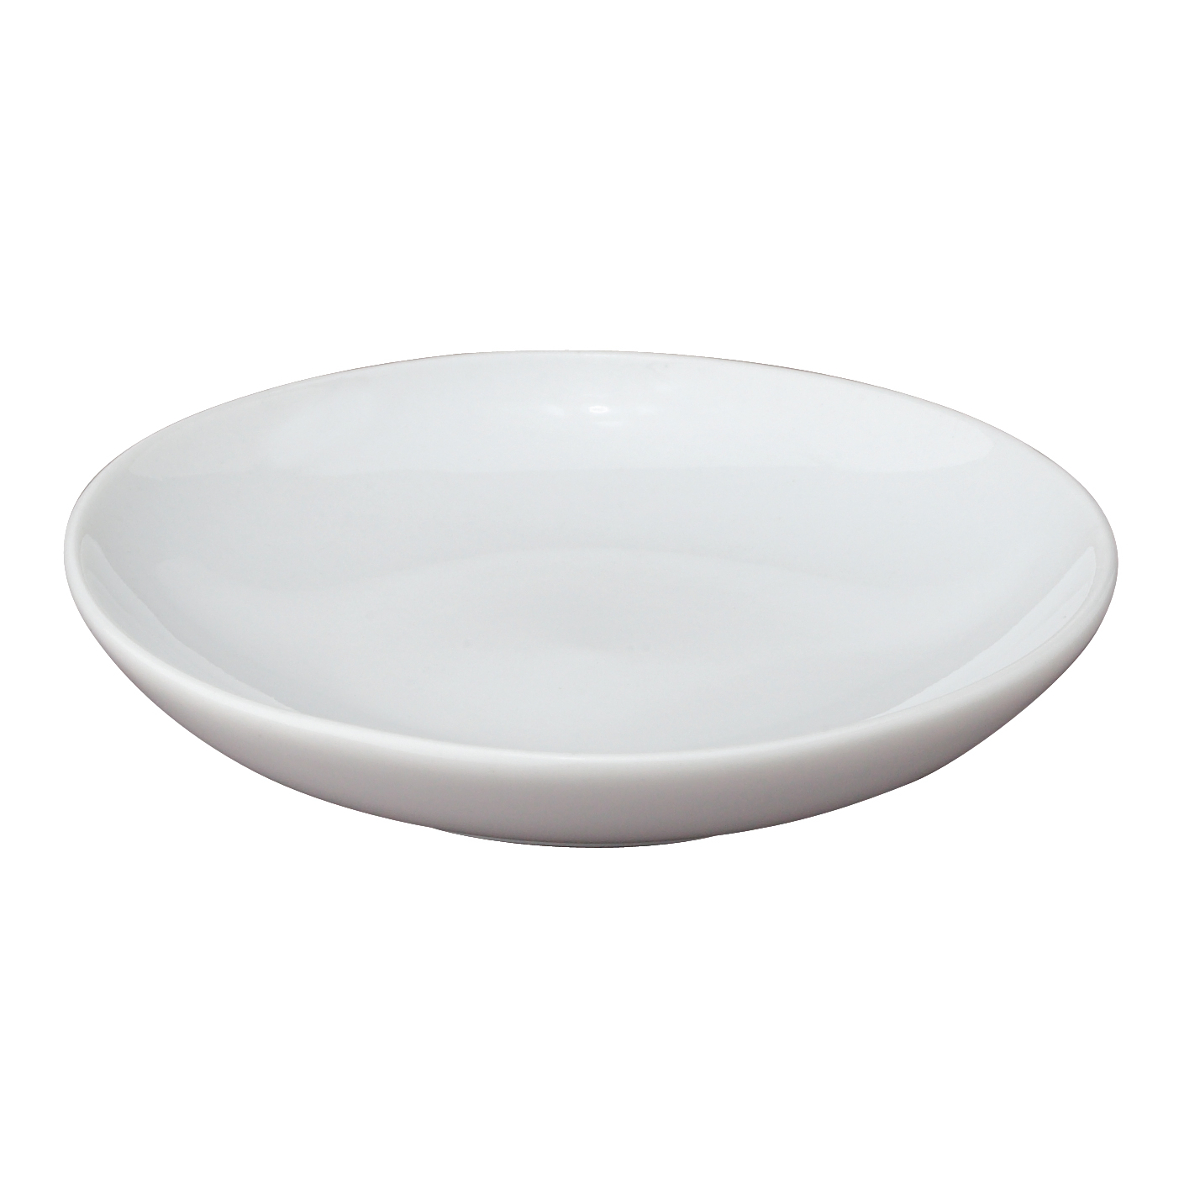 HIC Harold Import Co. White Porcelain 3.5 Inch Round Soy Sauce Dish